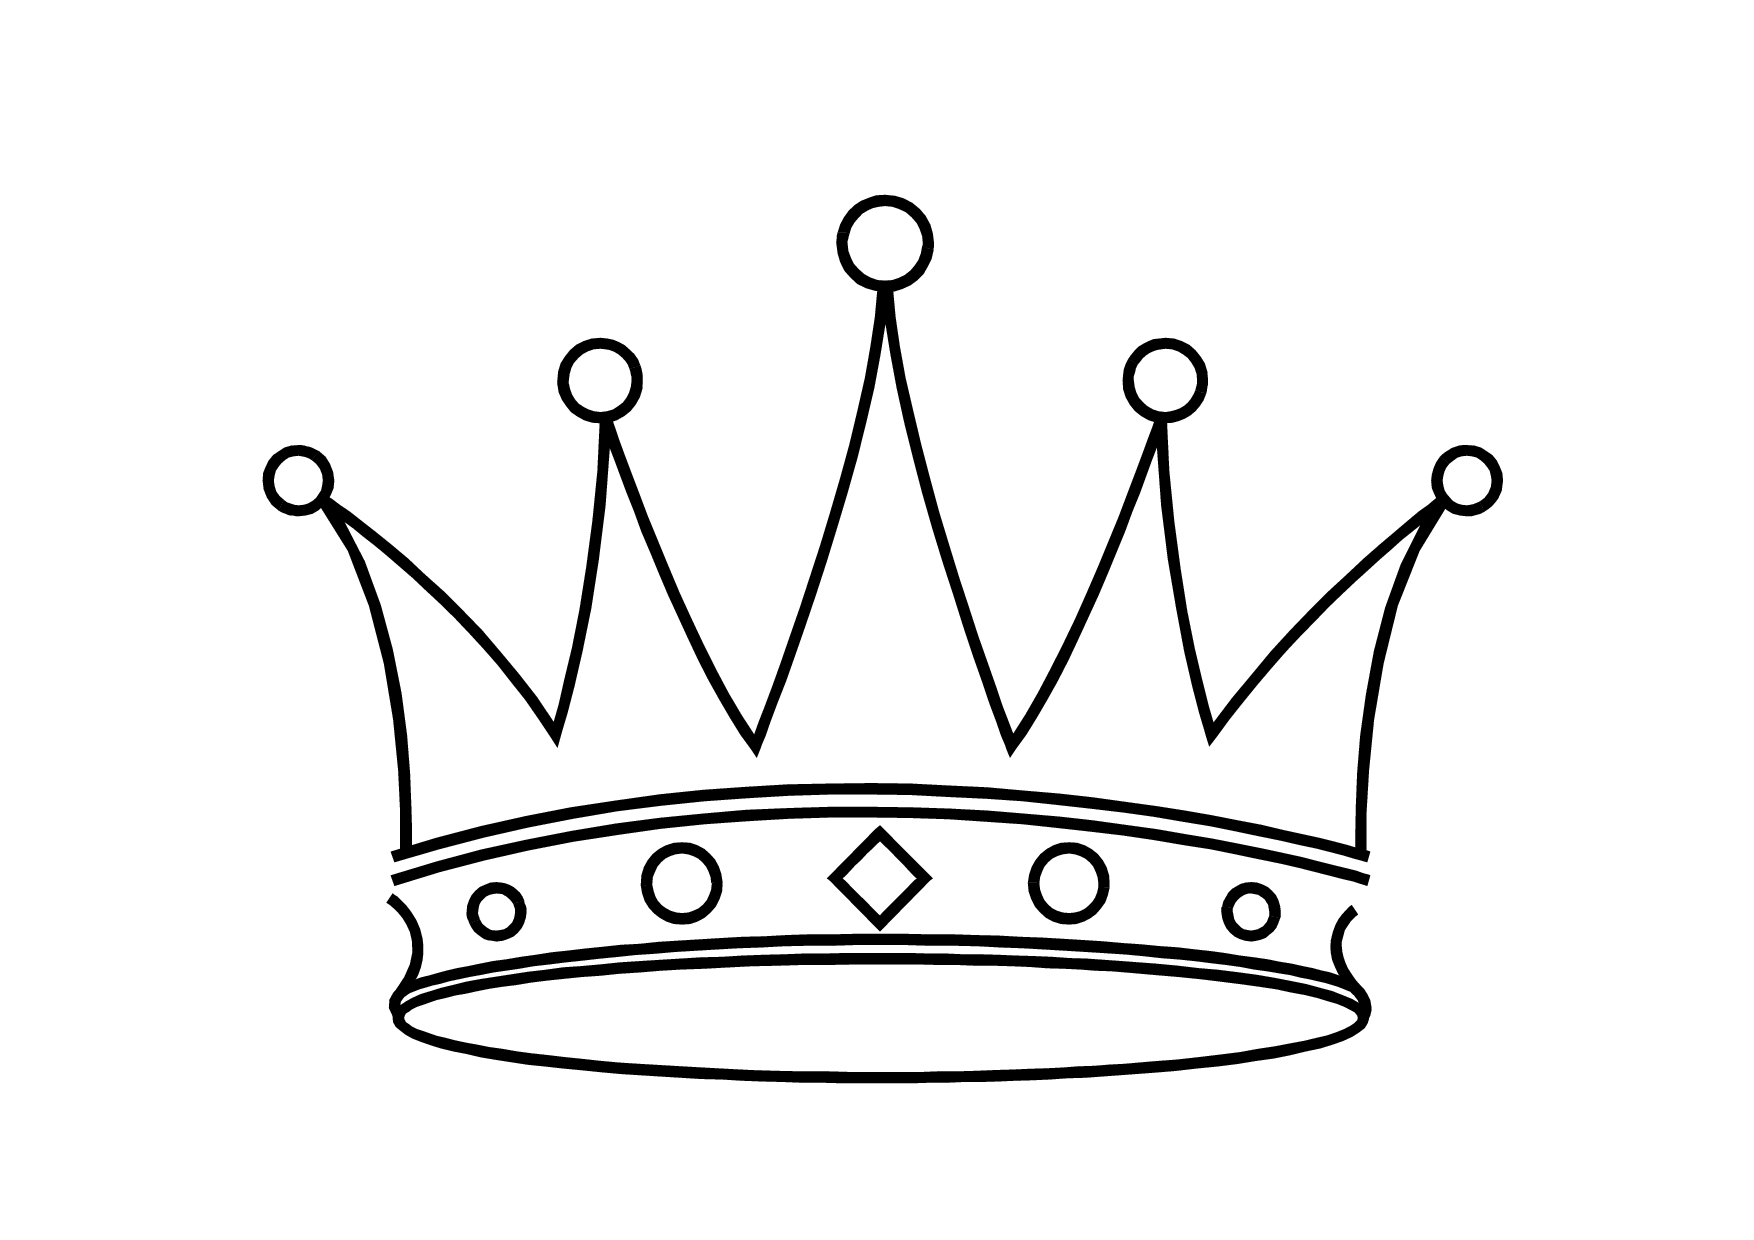 Simple king crown outline - photo#7